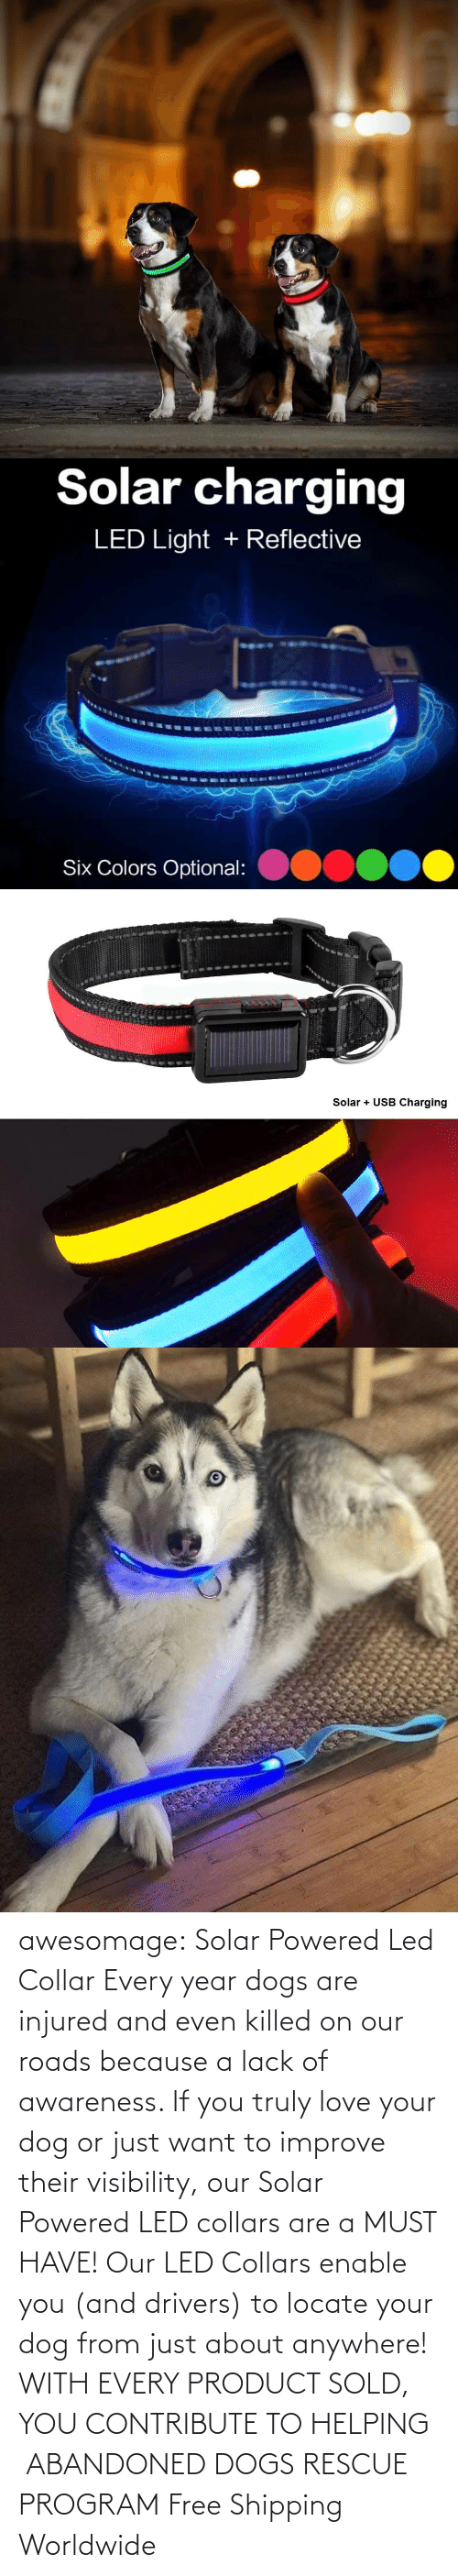 drivers: awesomage: Solar Powered Led Collar   Every year dogs are injured and even killed on our roads because a lack of awareness. If you truly love your dog or just want to improve their visibility, our Solar Powered LED collars are a MUST HAVE!   Our LED Collars enable you (and drivers) to locate your dog from just about anywhere!     WITH EVERY PRODUCT SOLD, YOU CONTRIBUTE TO HELPING  ABANDONED DOGS RESCUE PROGRAM     Free Shipping Worldwide